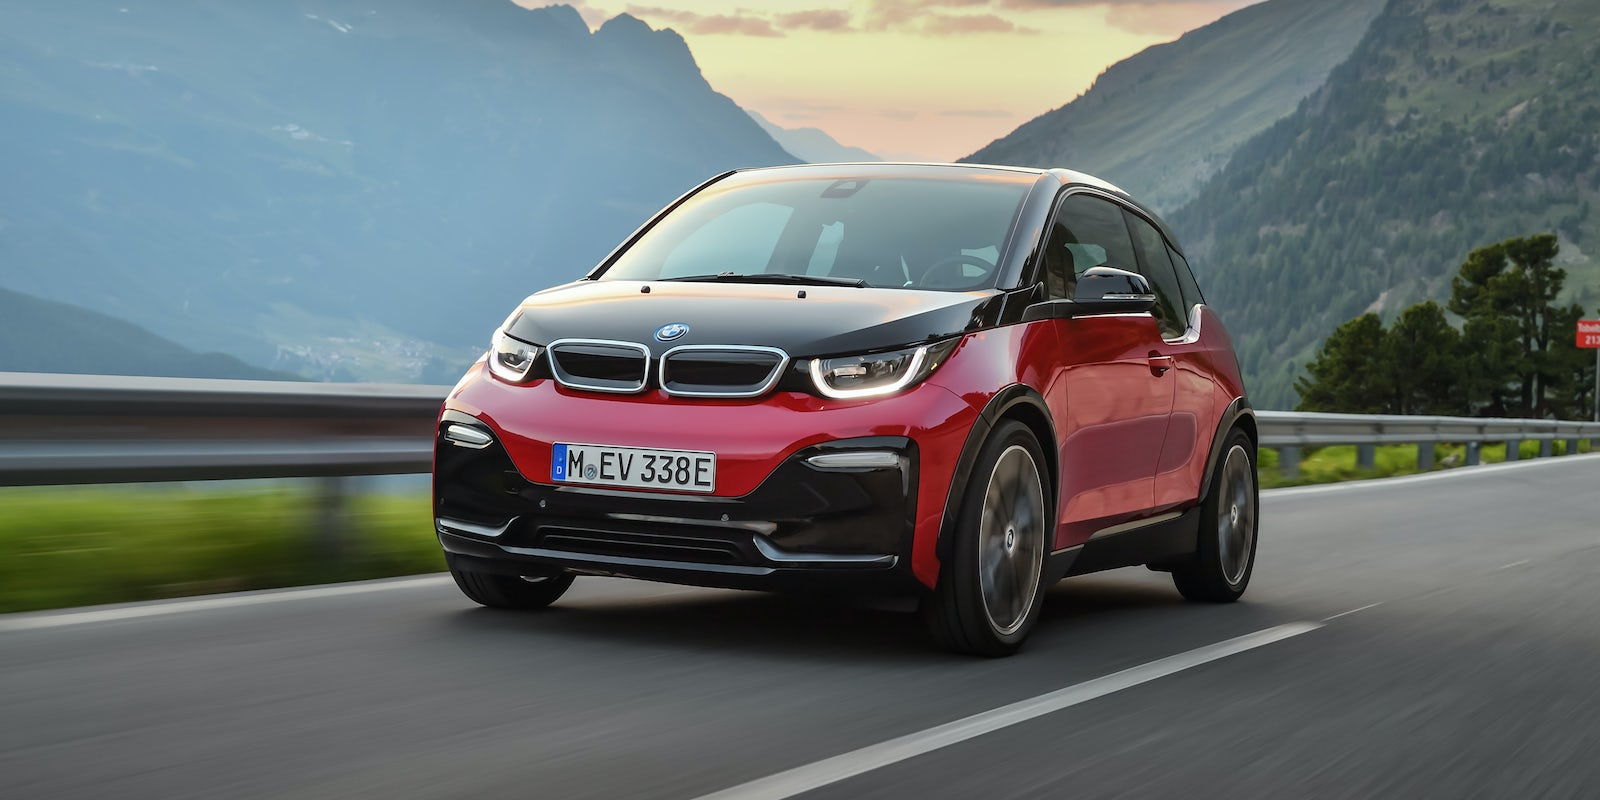 bmw i3 test technische daten preis carwow. Black Bedroom Furniture Sets. Home Design Ideas